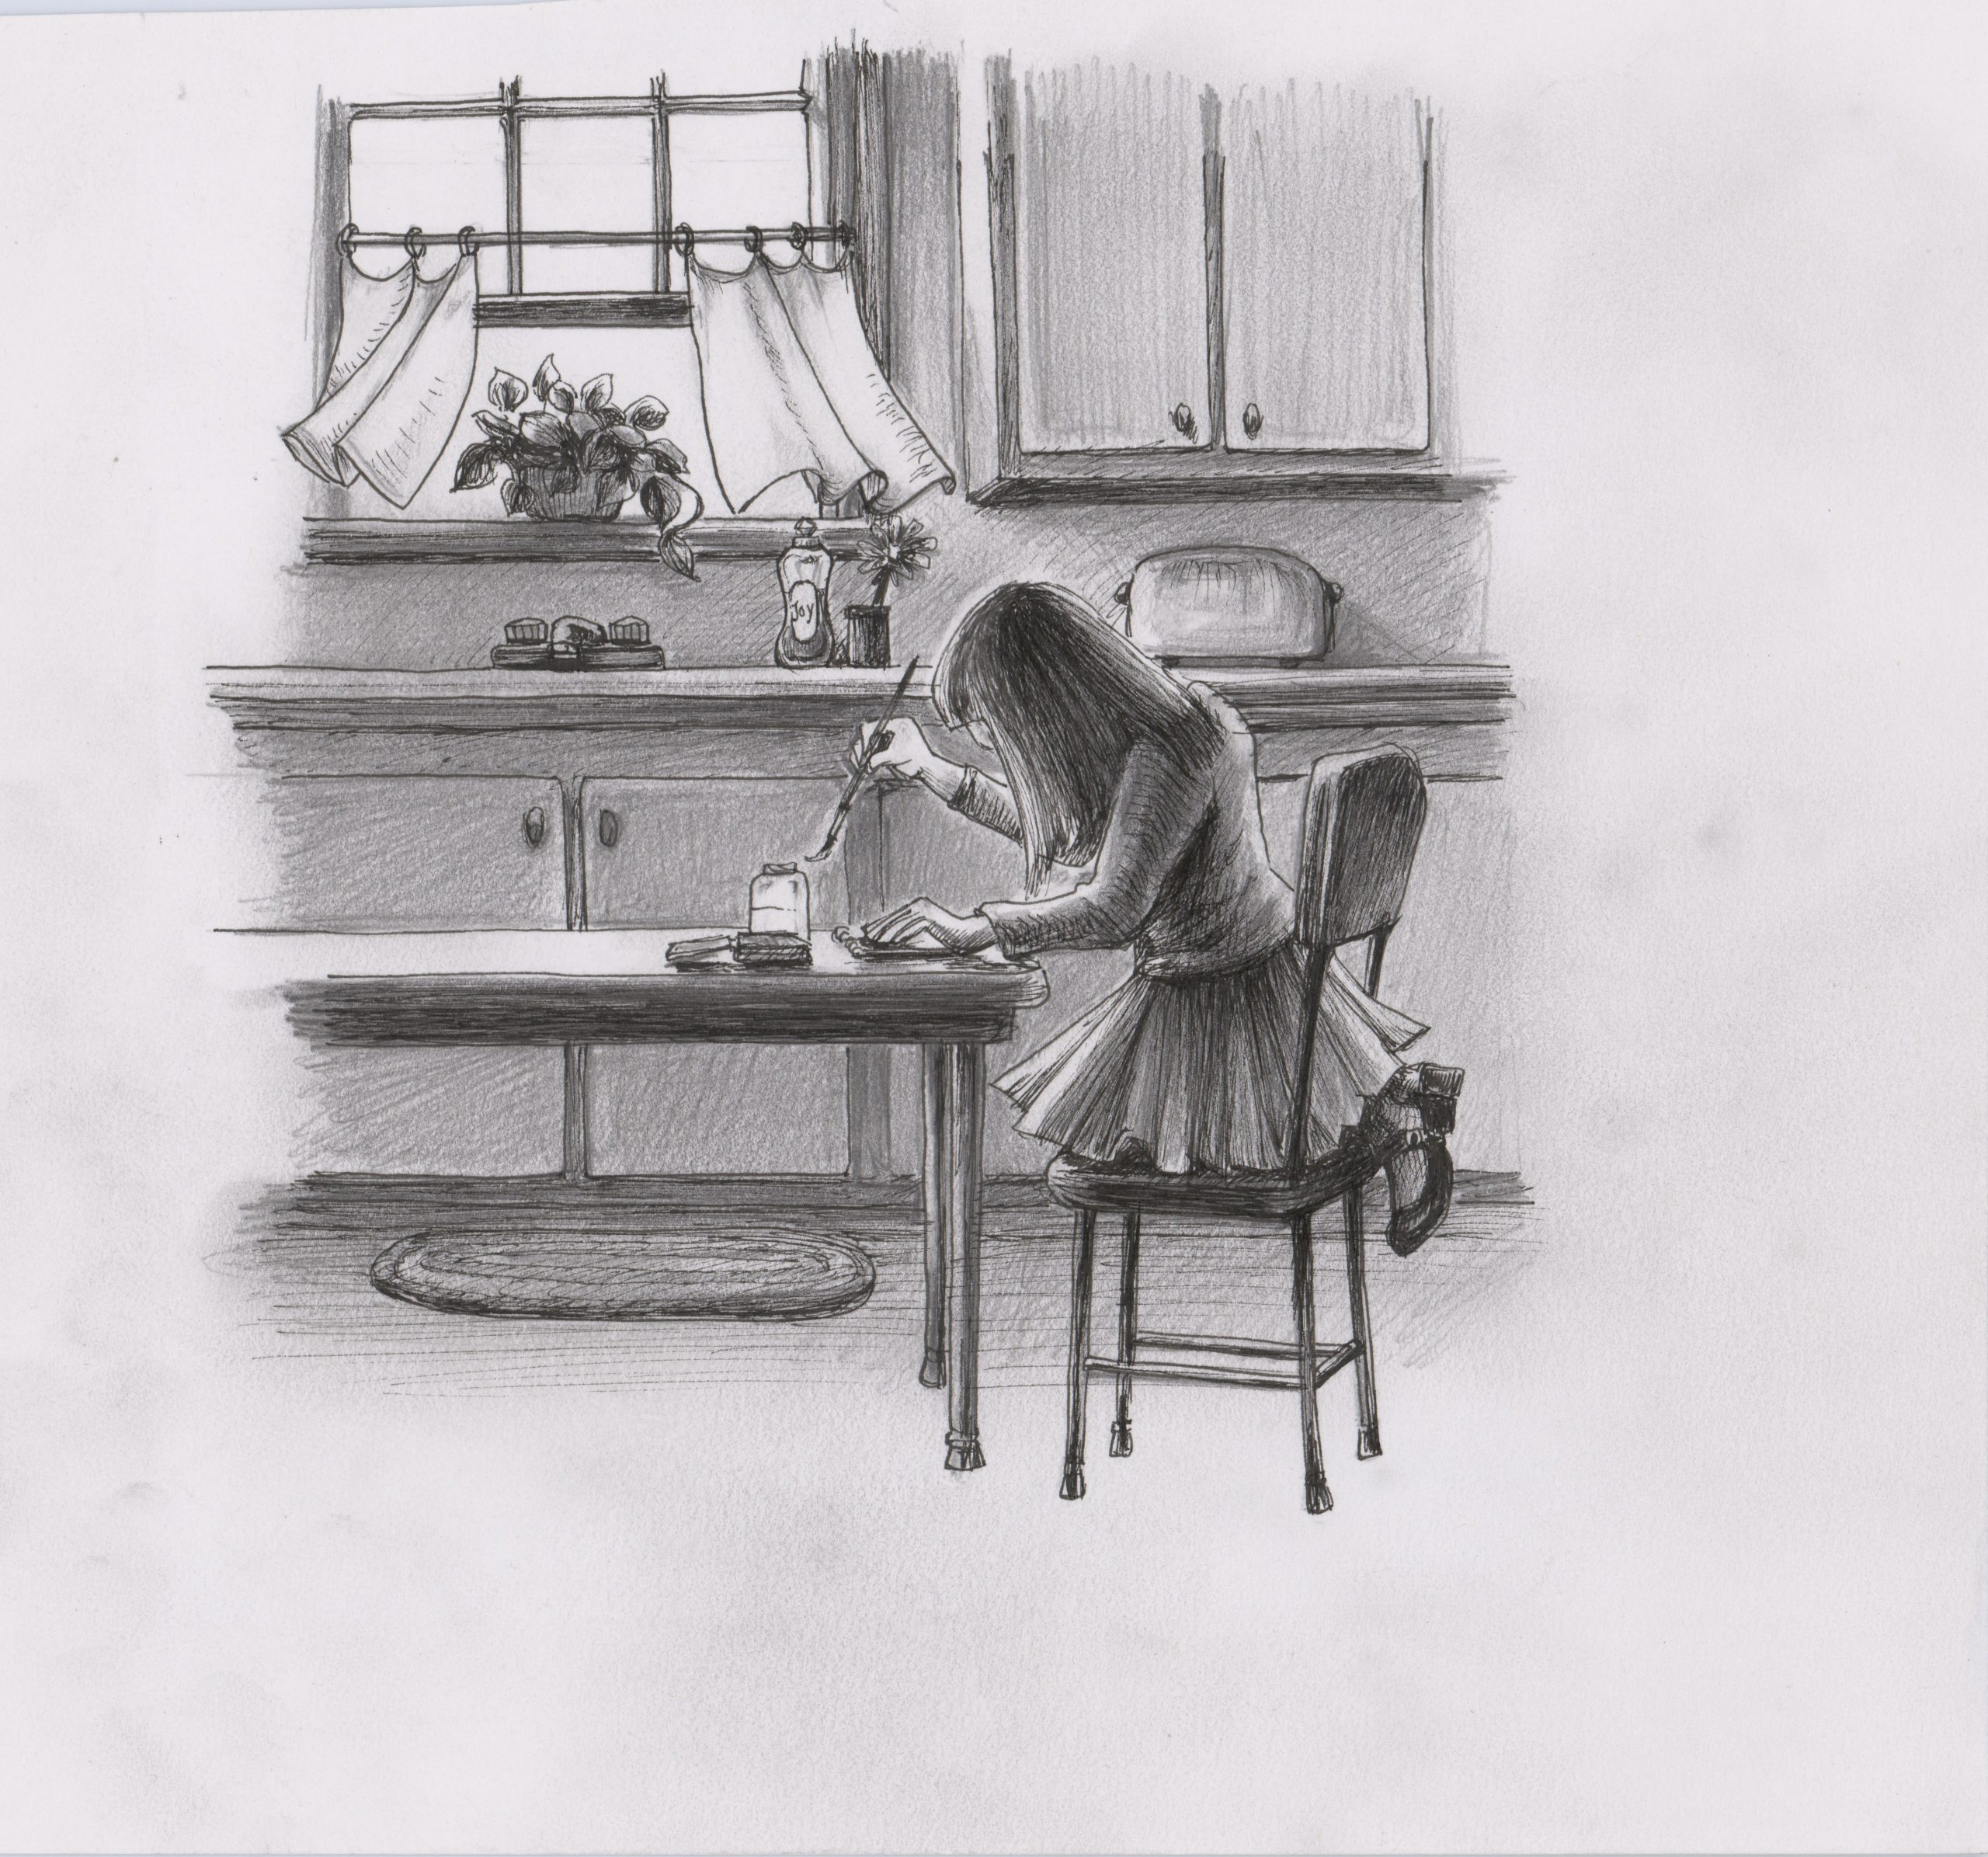 A young girl makes art at the kitchen table.